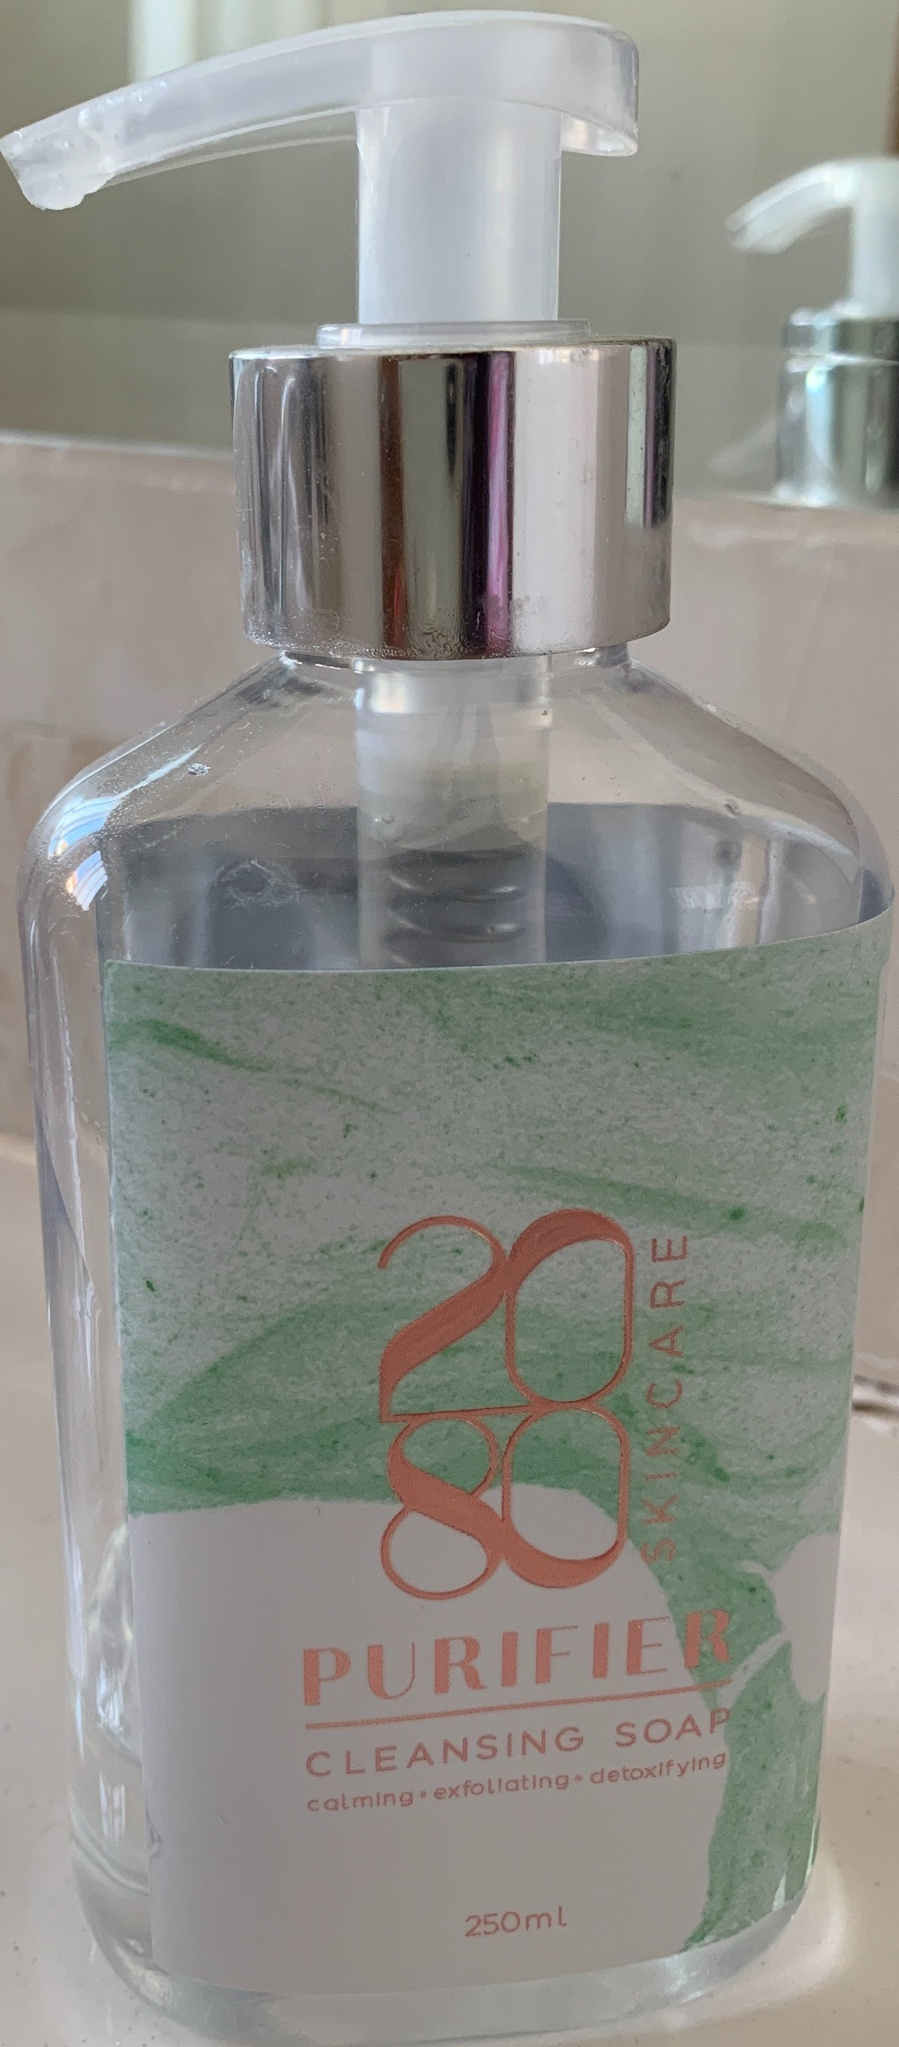 20/80 skincare Purifier Cleansing Soap